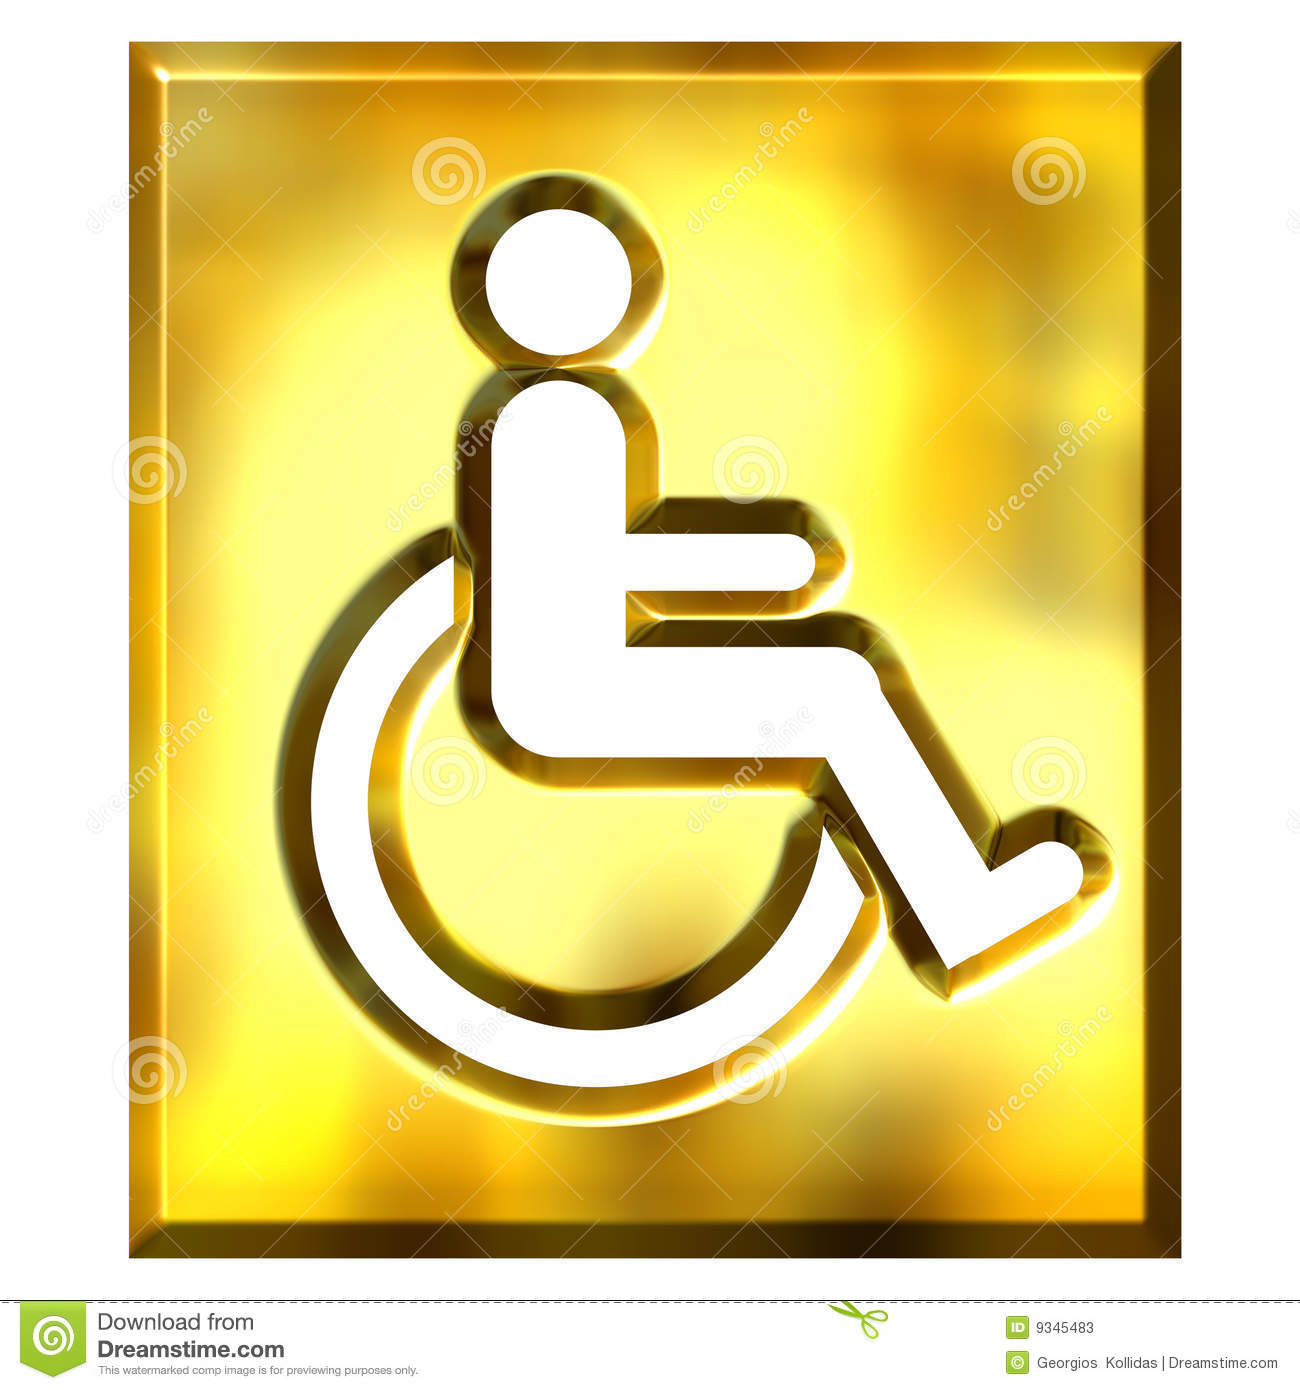 Email Icon Isolated On Special Yellow Square Button Abstract 3d Golden Special Needs Sign Stock Photos Image 9345483